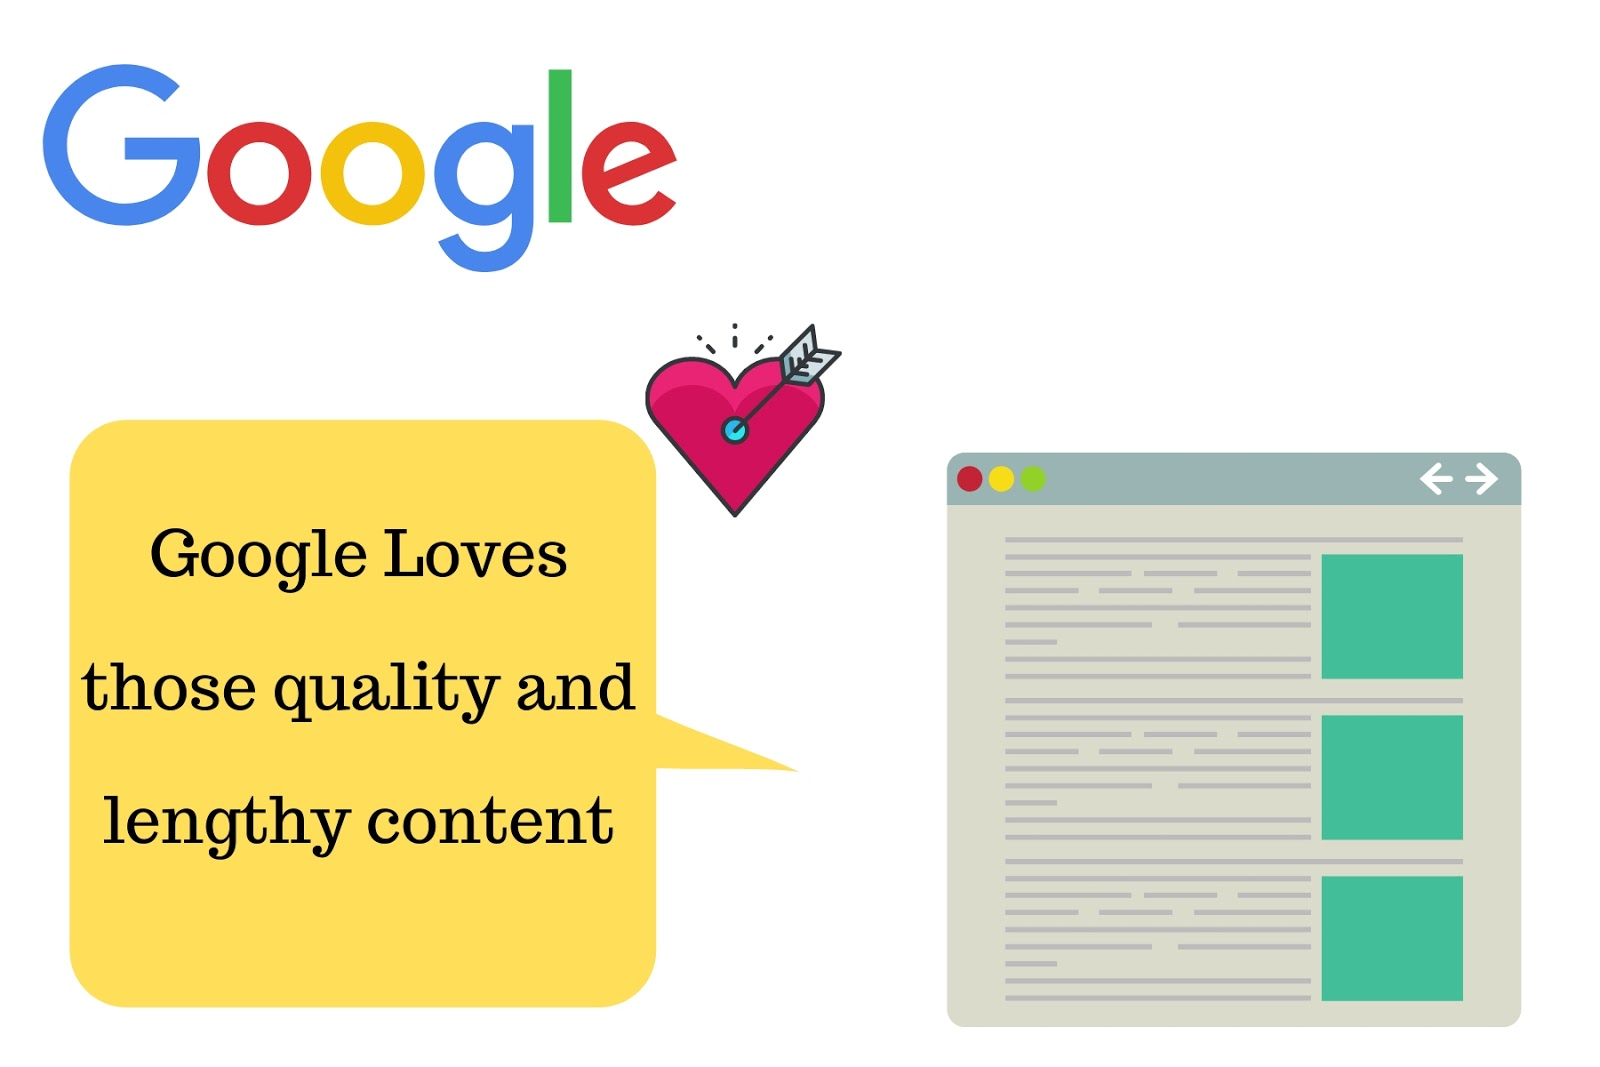 Google loves lengthy content